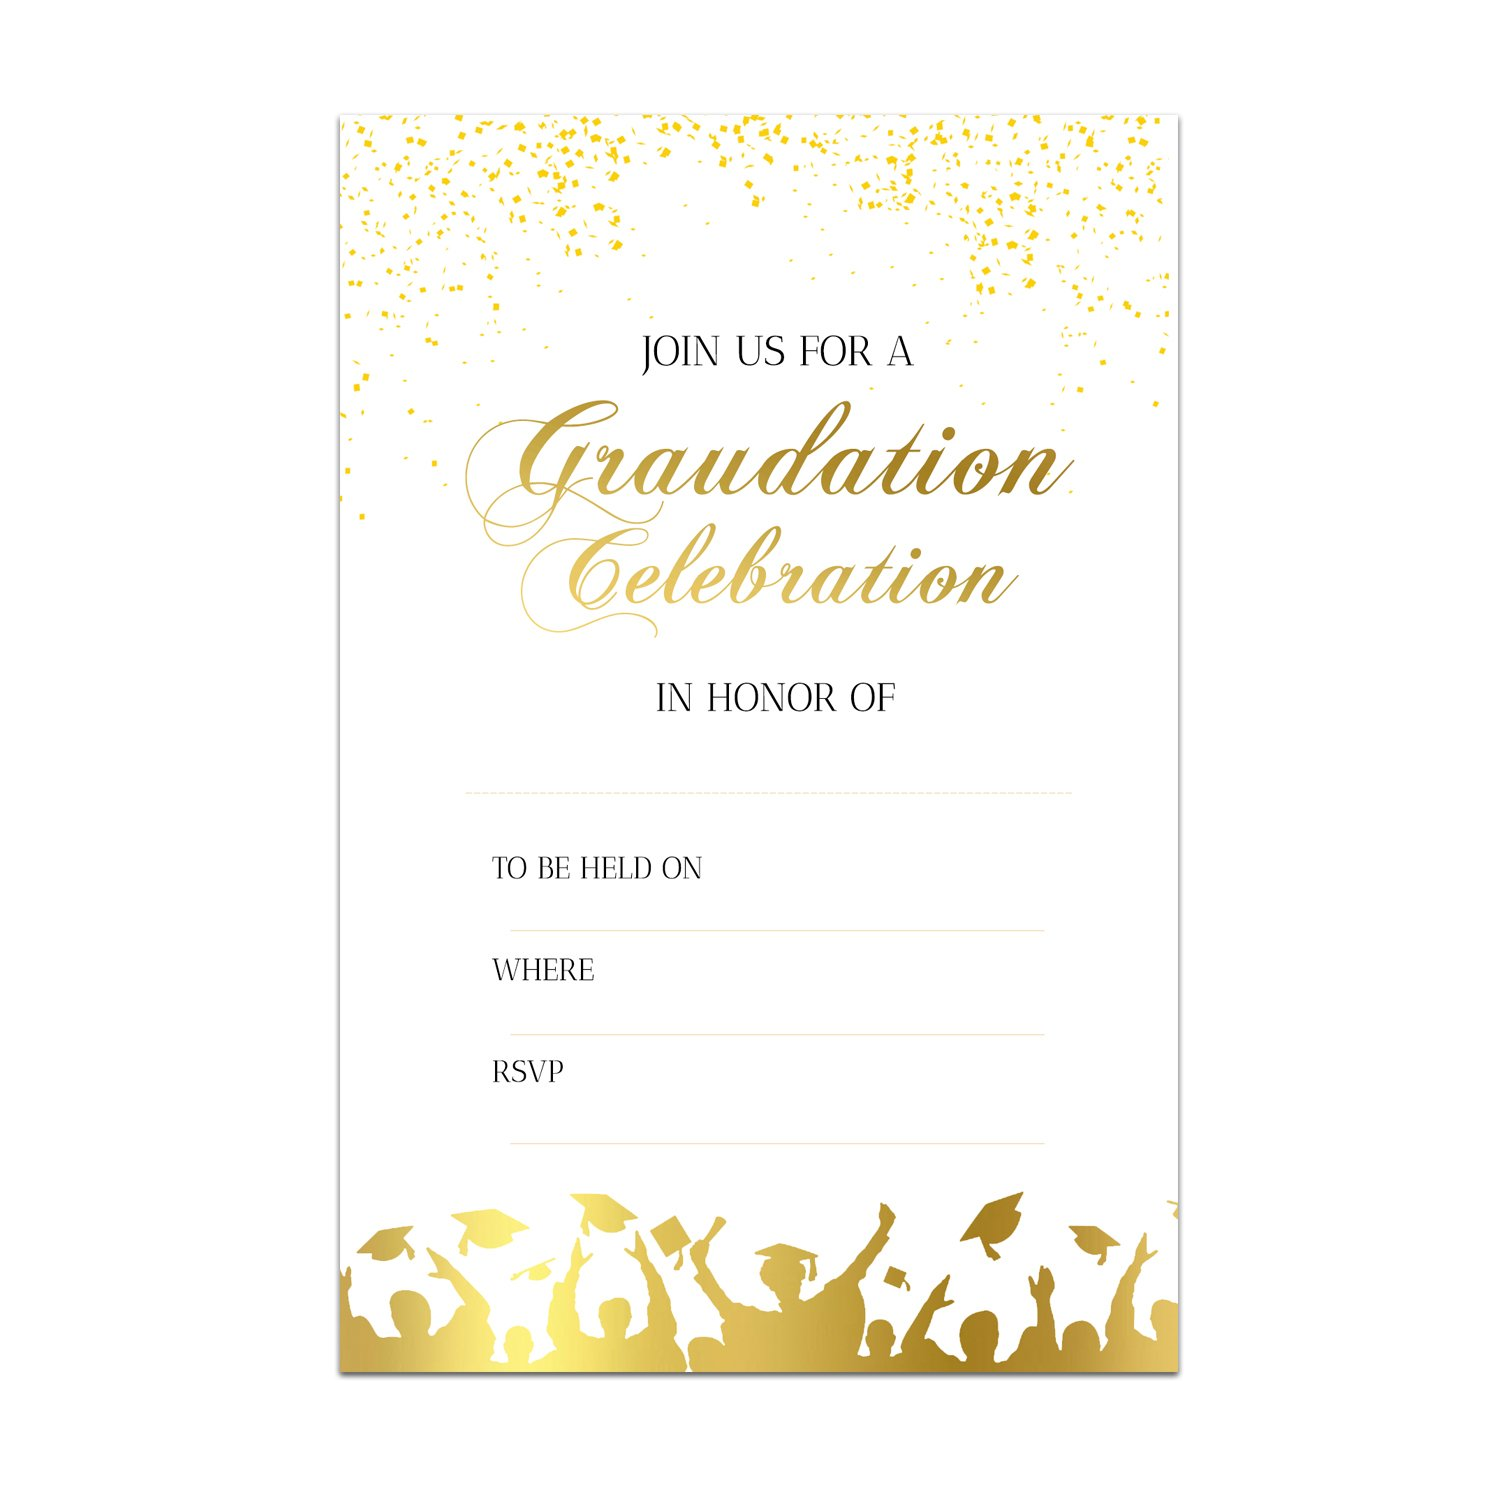 25 Graduation Party Invitations - Graduation Celebration Party Invites High School College Graduate